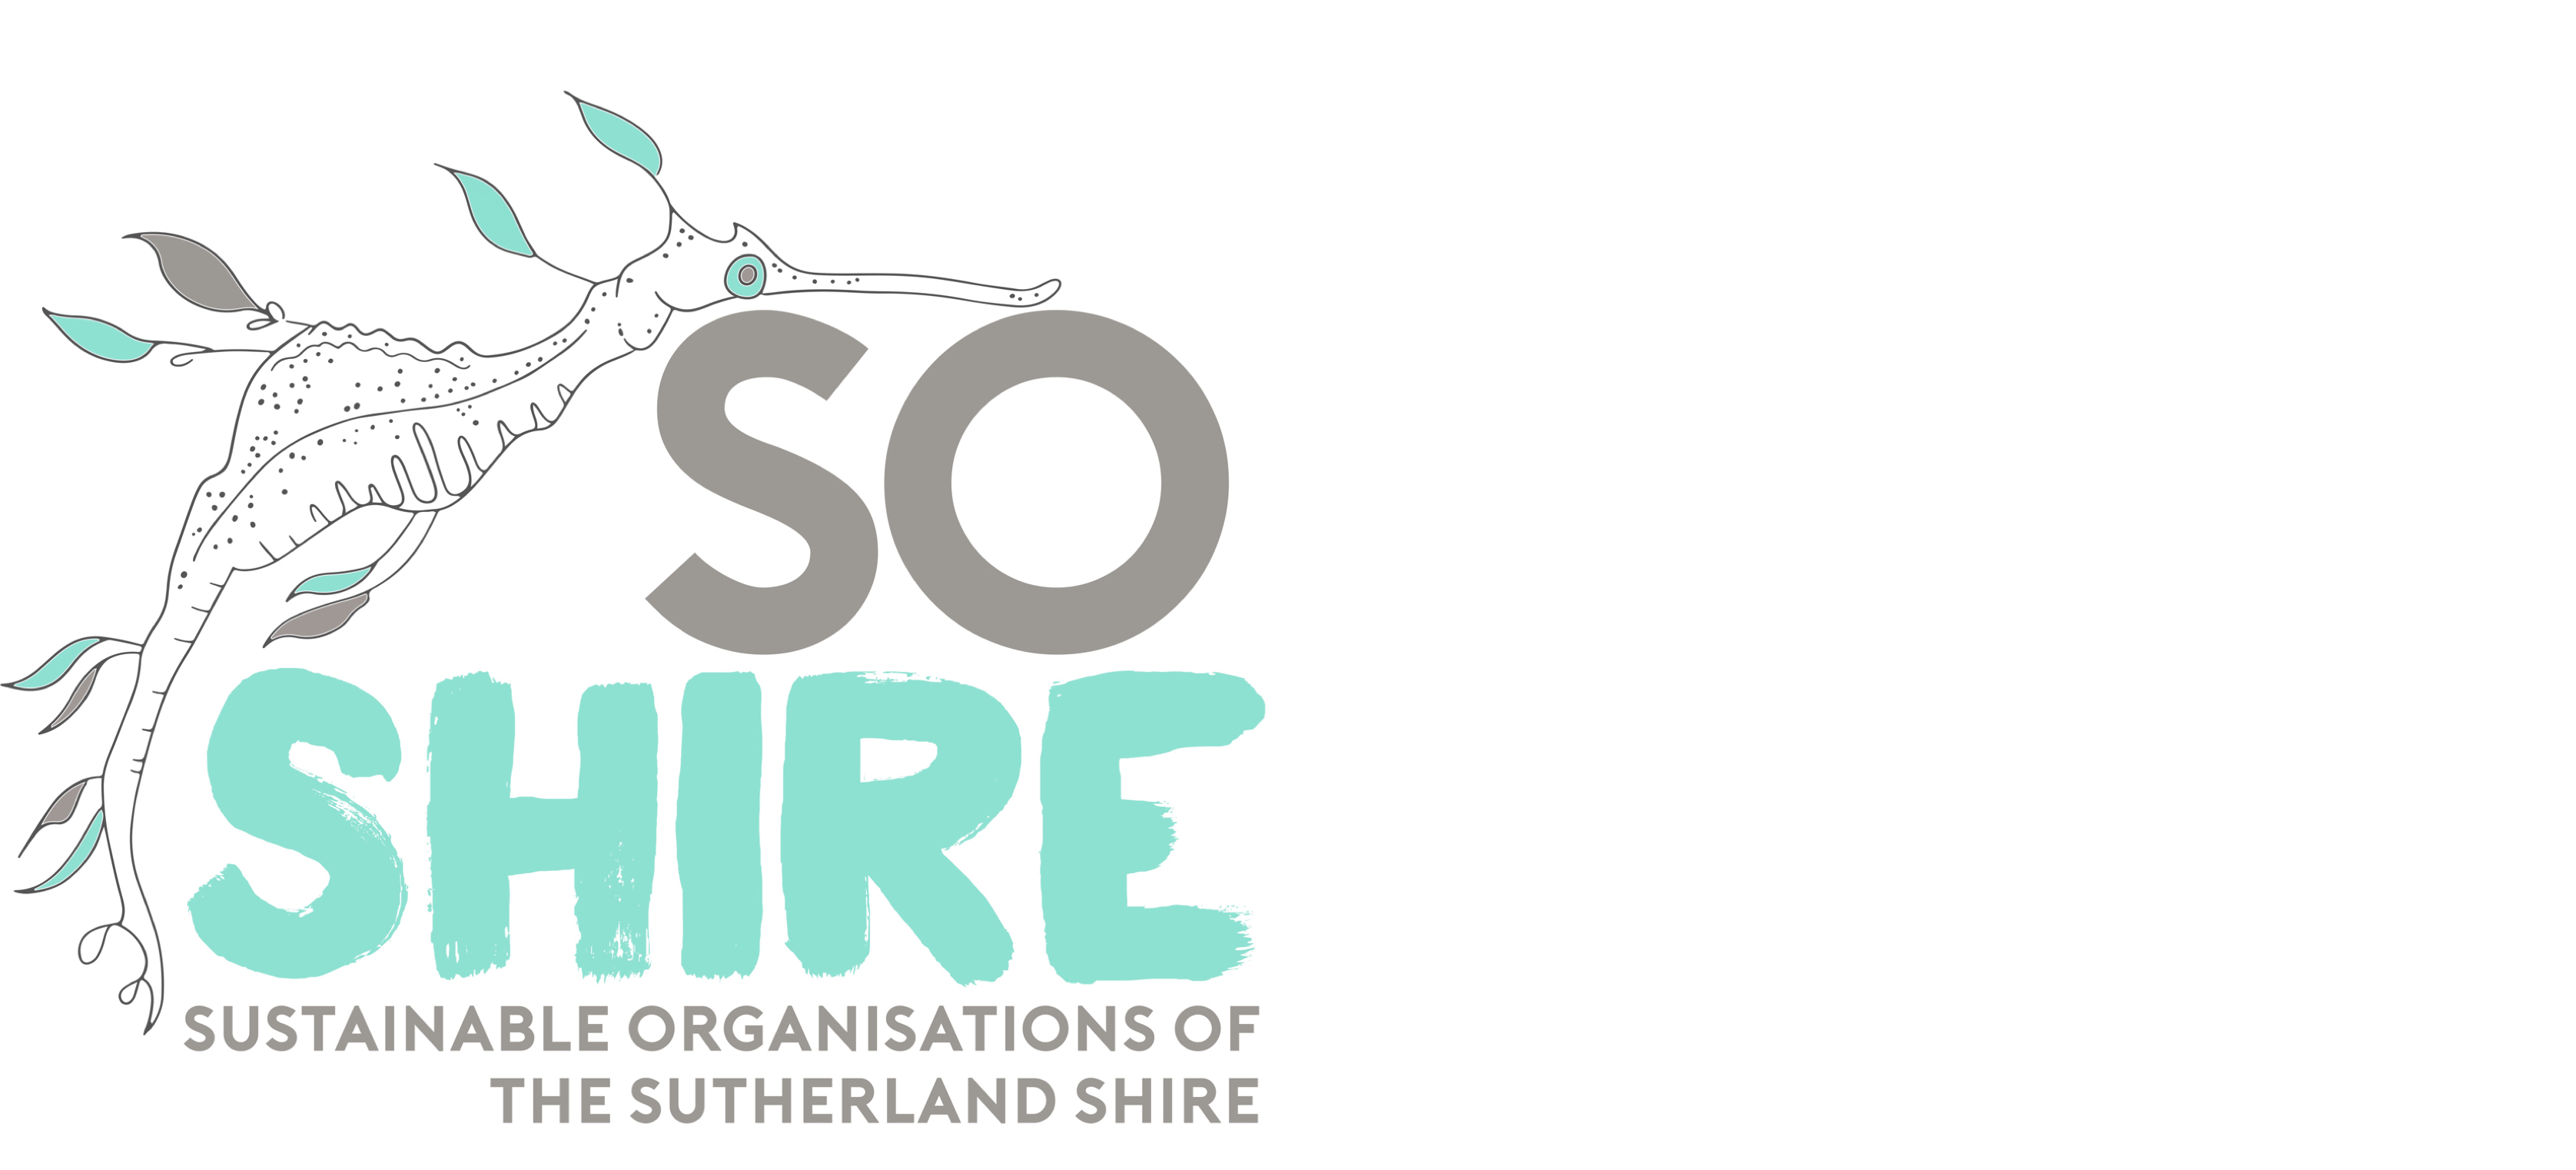 SO Shire & Plastic Free Sutherland Shire